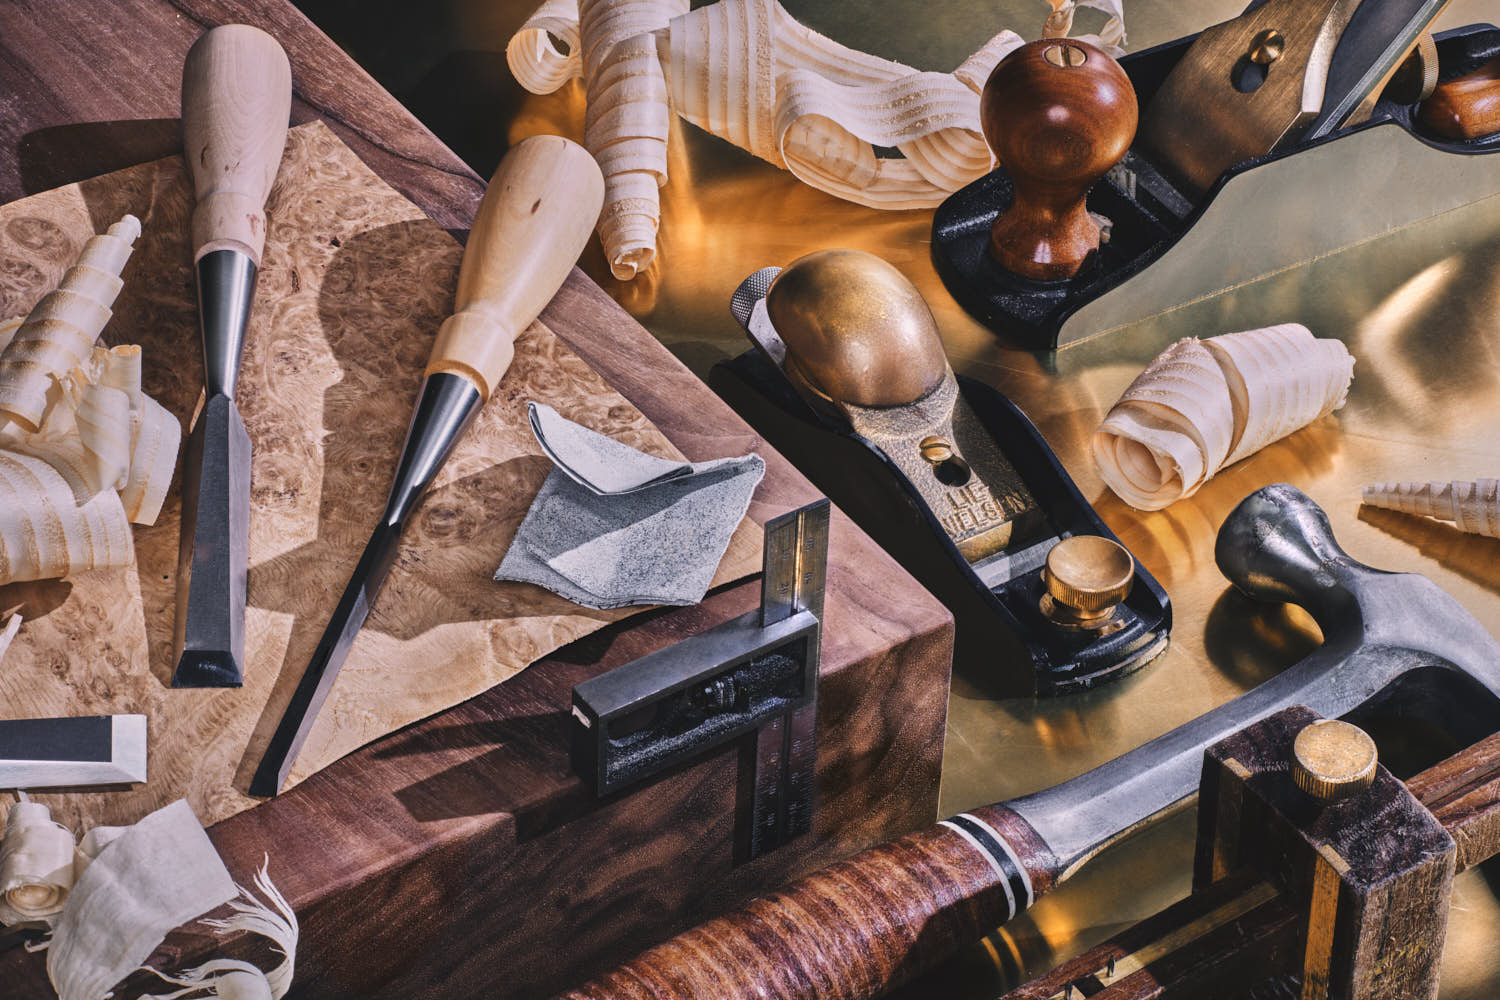 still life product photography of luxury bespoke joinery workshop tools by yorkshire photographer matthew lloyd.jpg